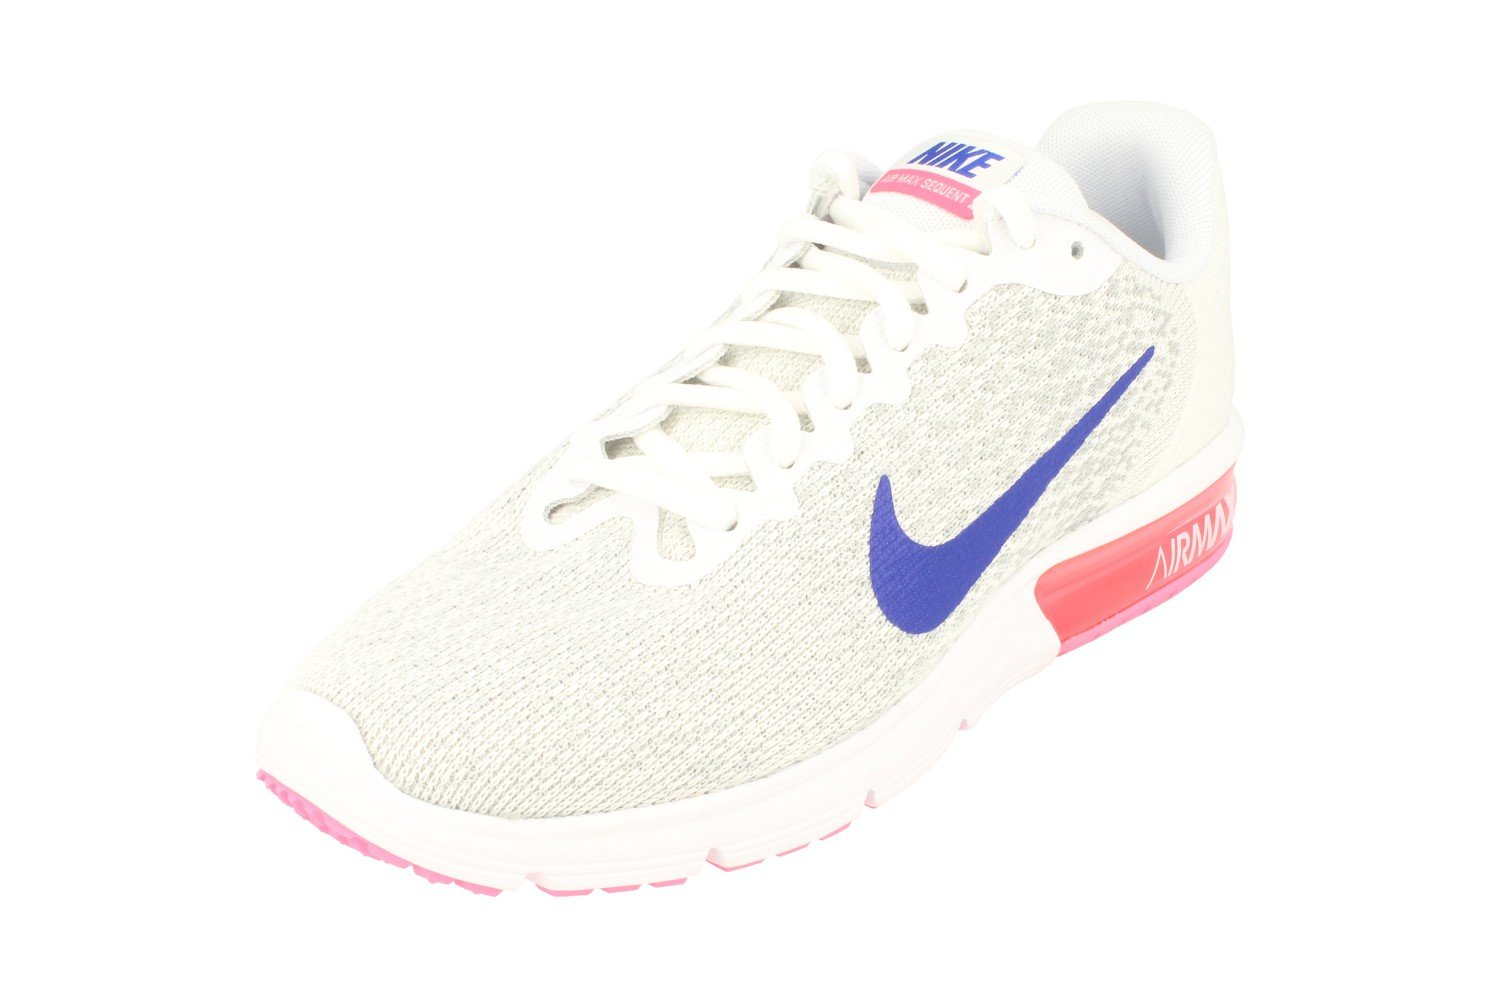 0c1523ed2d Galleon - Nike Womens Air Max Sequent 2 Running Trainers 852465 Sneakers  Shoes (UK 6 Us 8.5 EU 40, White Concord Laser Pink 146)